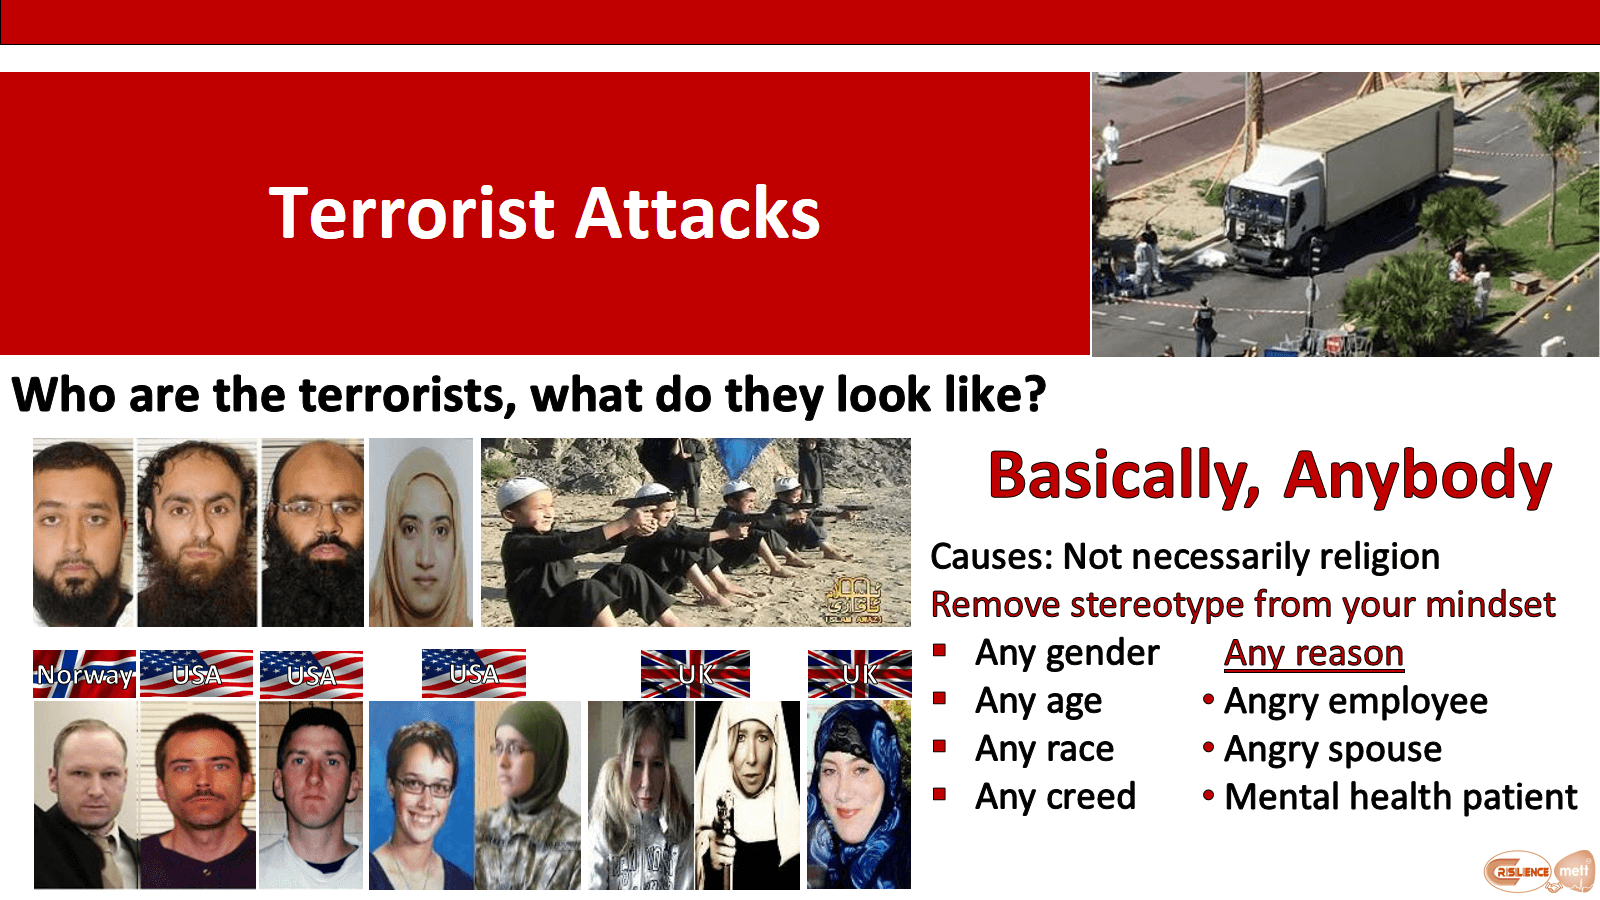 Who are the terrorists, what do they look like?